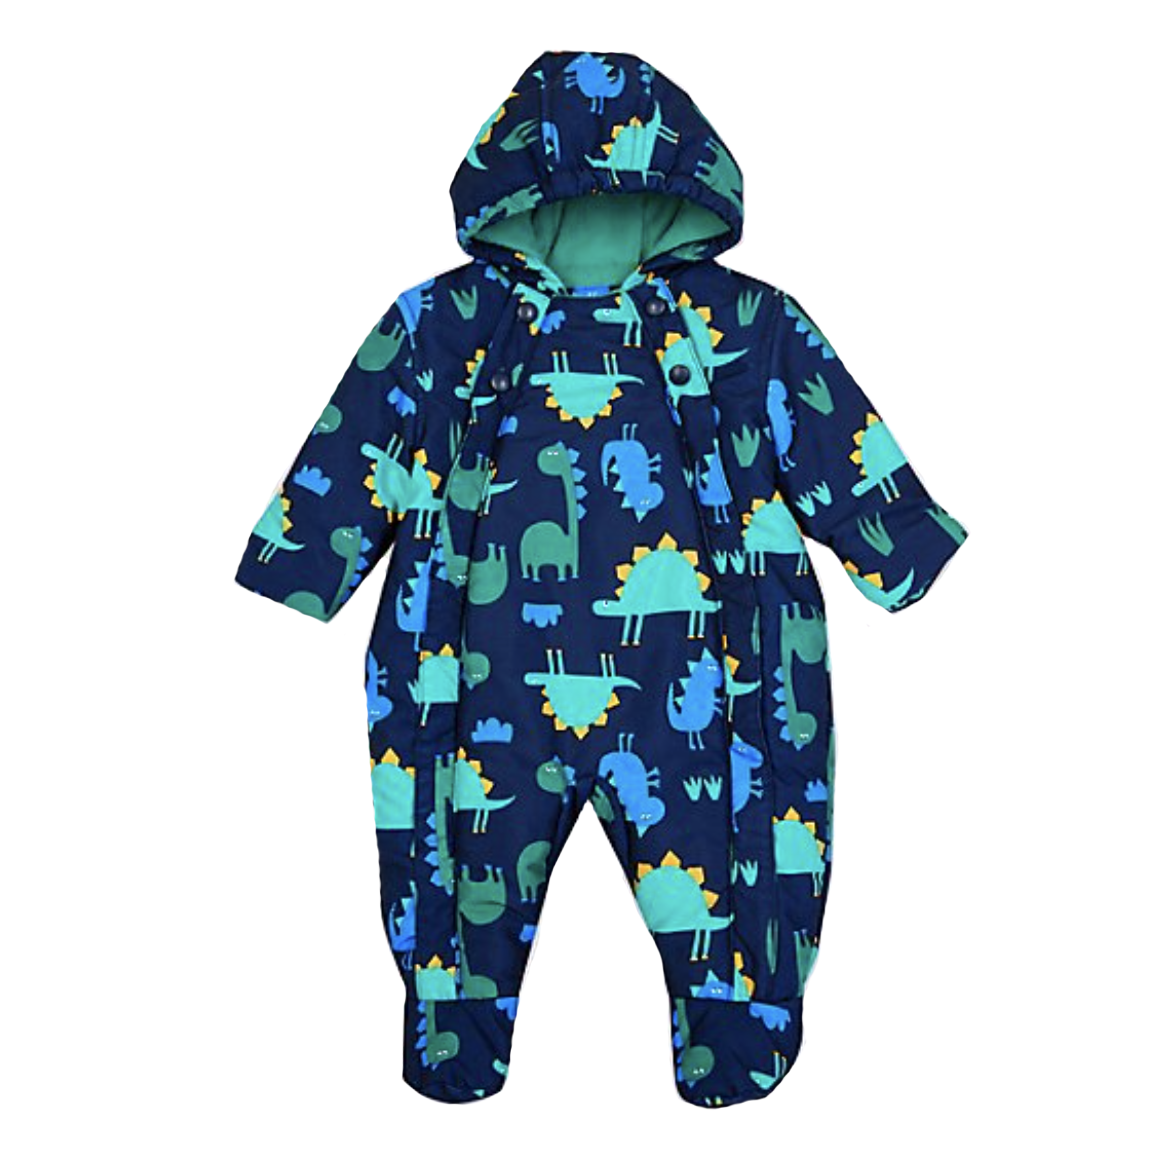 M&S Dinosaur Snowsuit